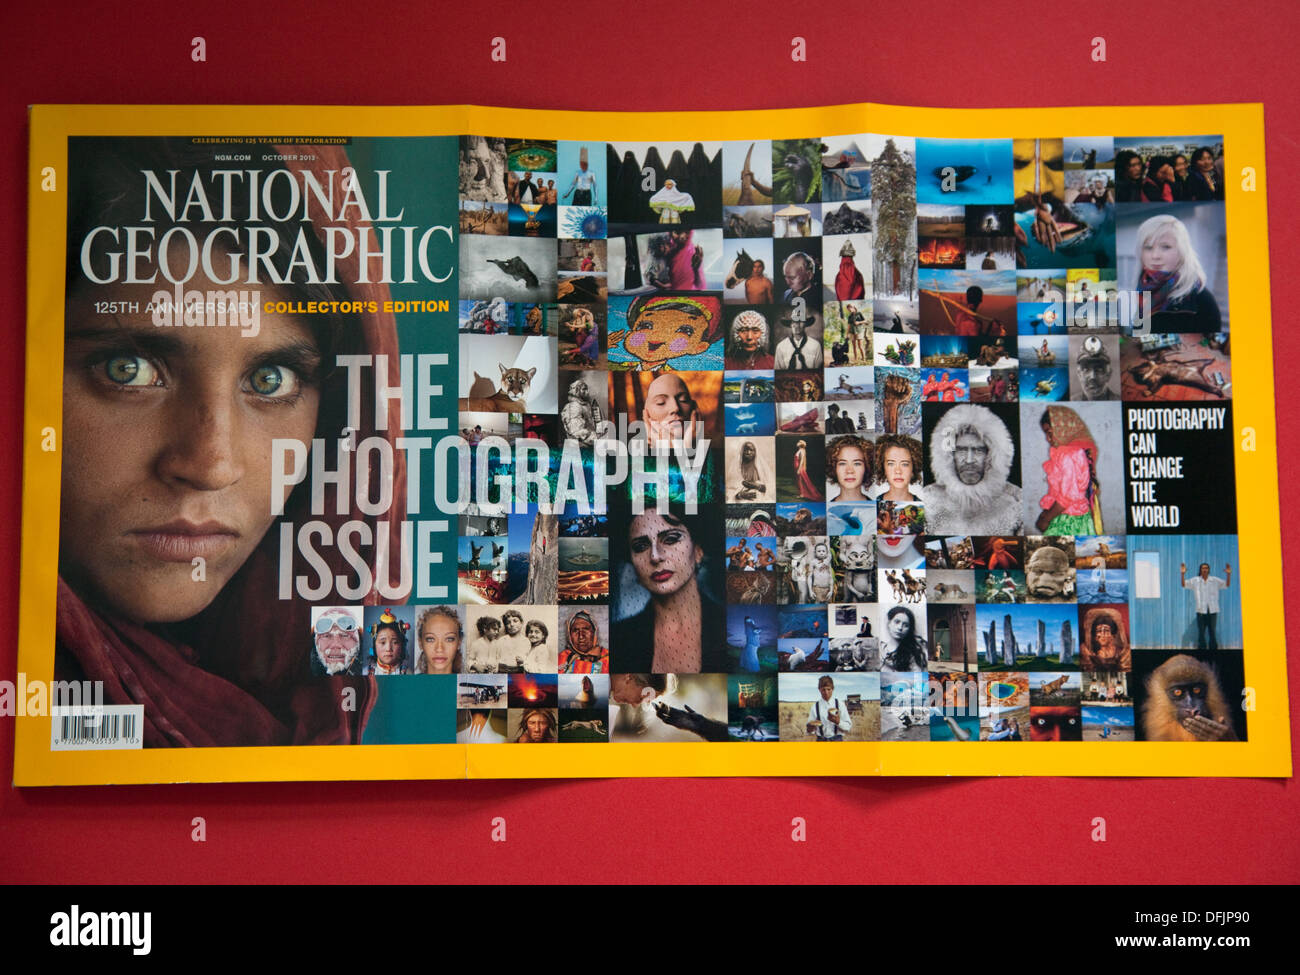 125th anniversary issue of National Geographic, London - Stock Image